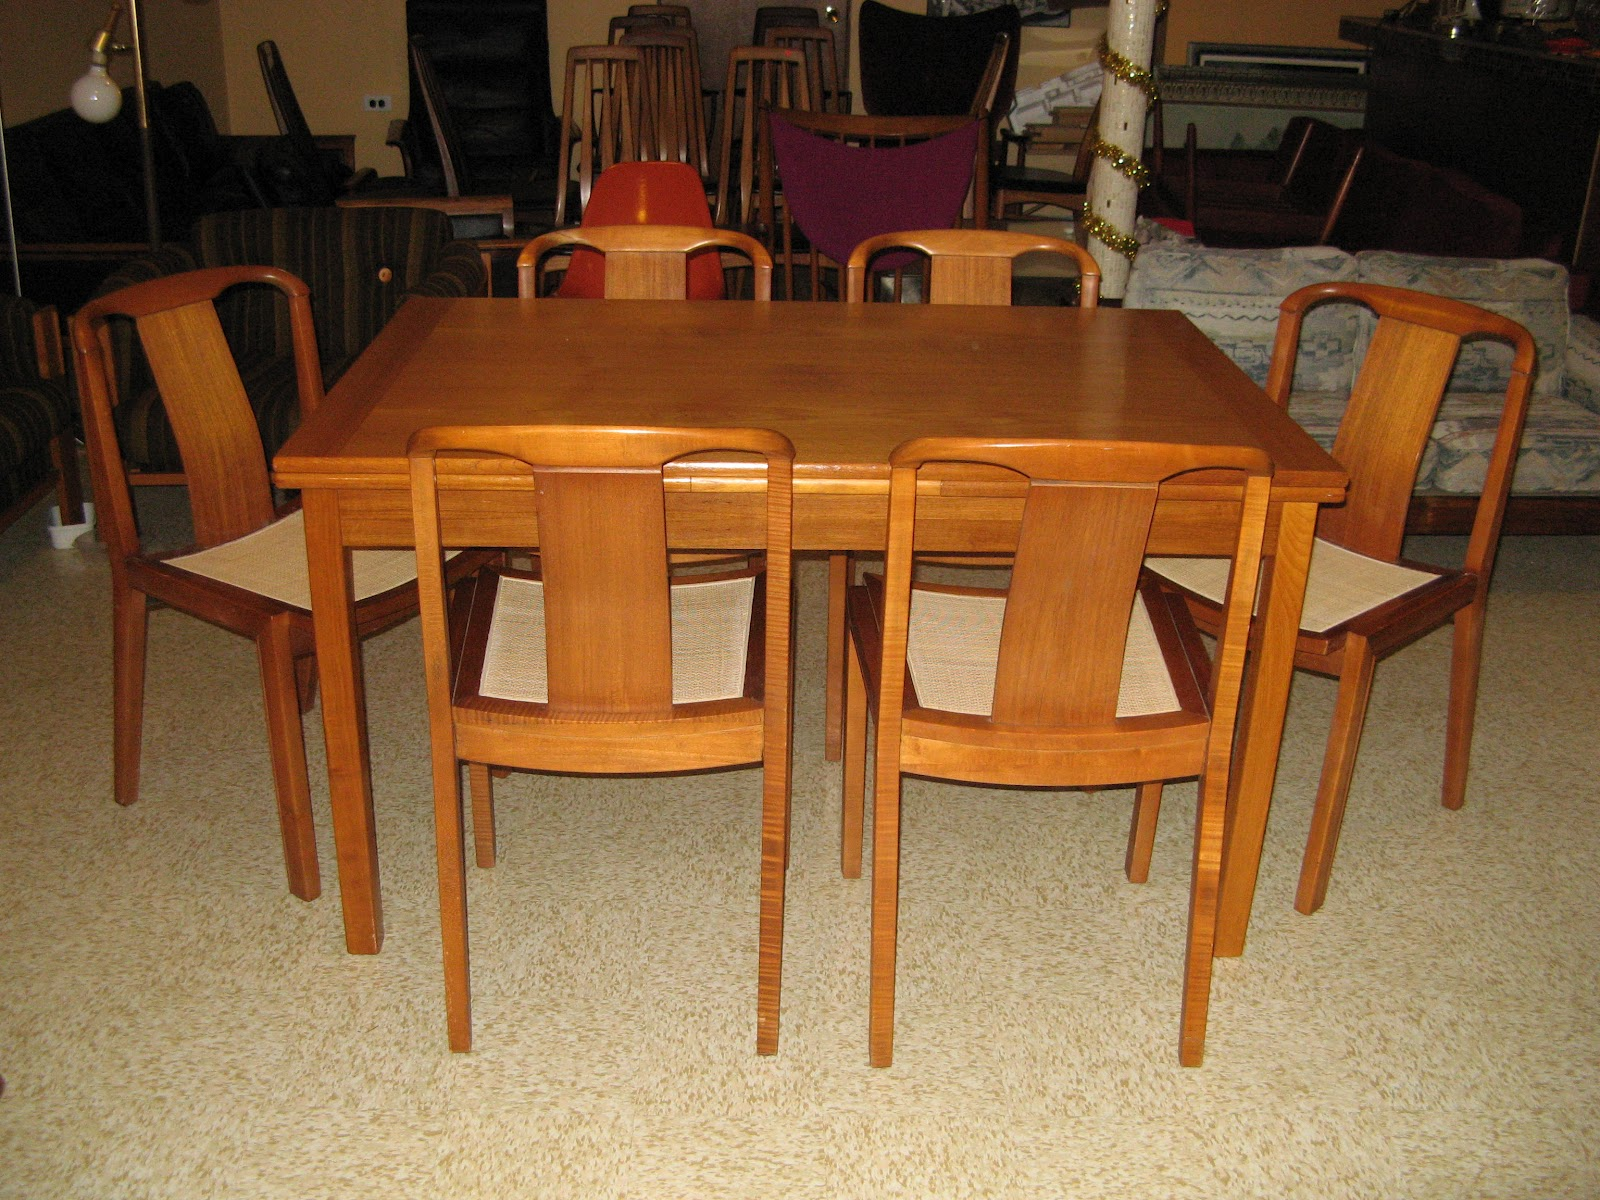 Amazing Mid Century Modern Dining Table and Chairs 1600 x 1200 · 437 kB · jpeg